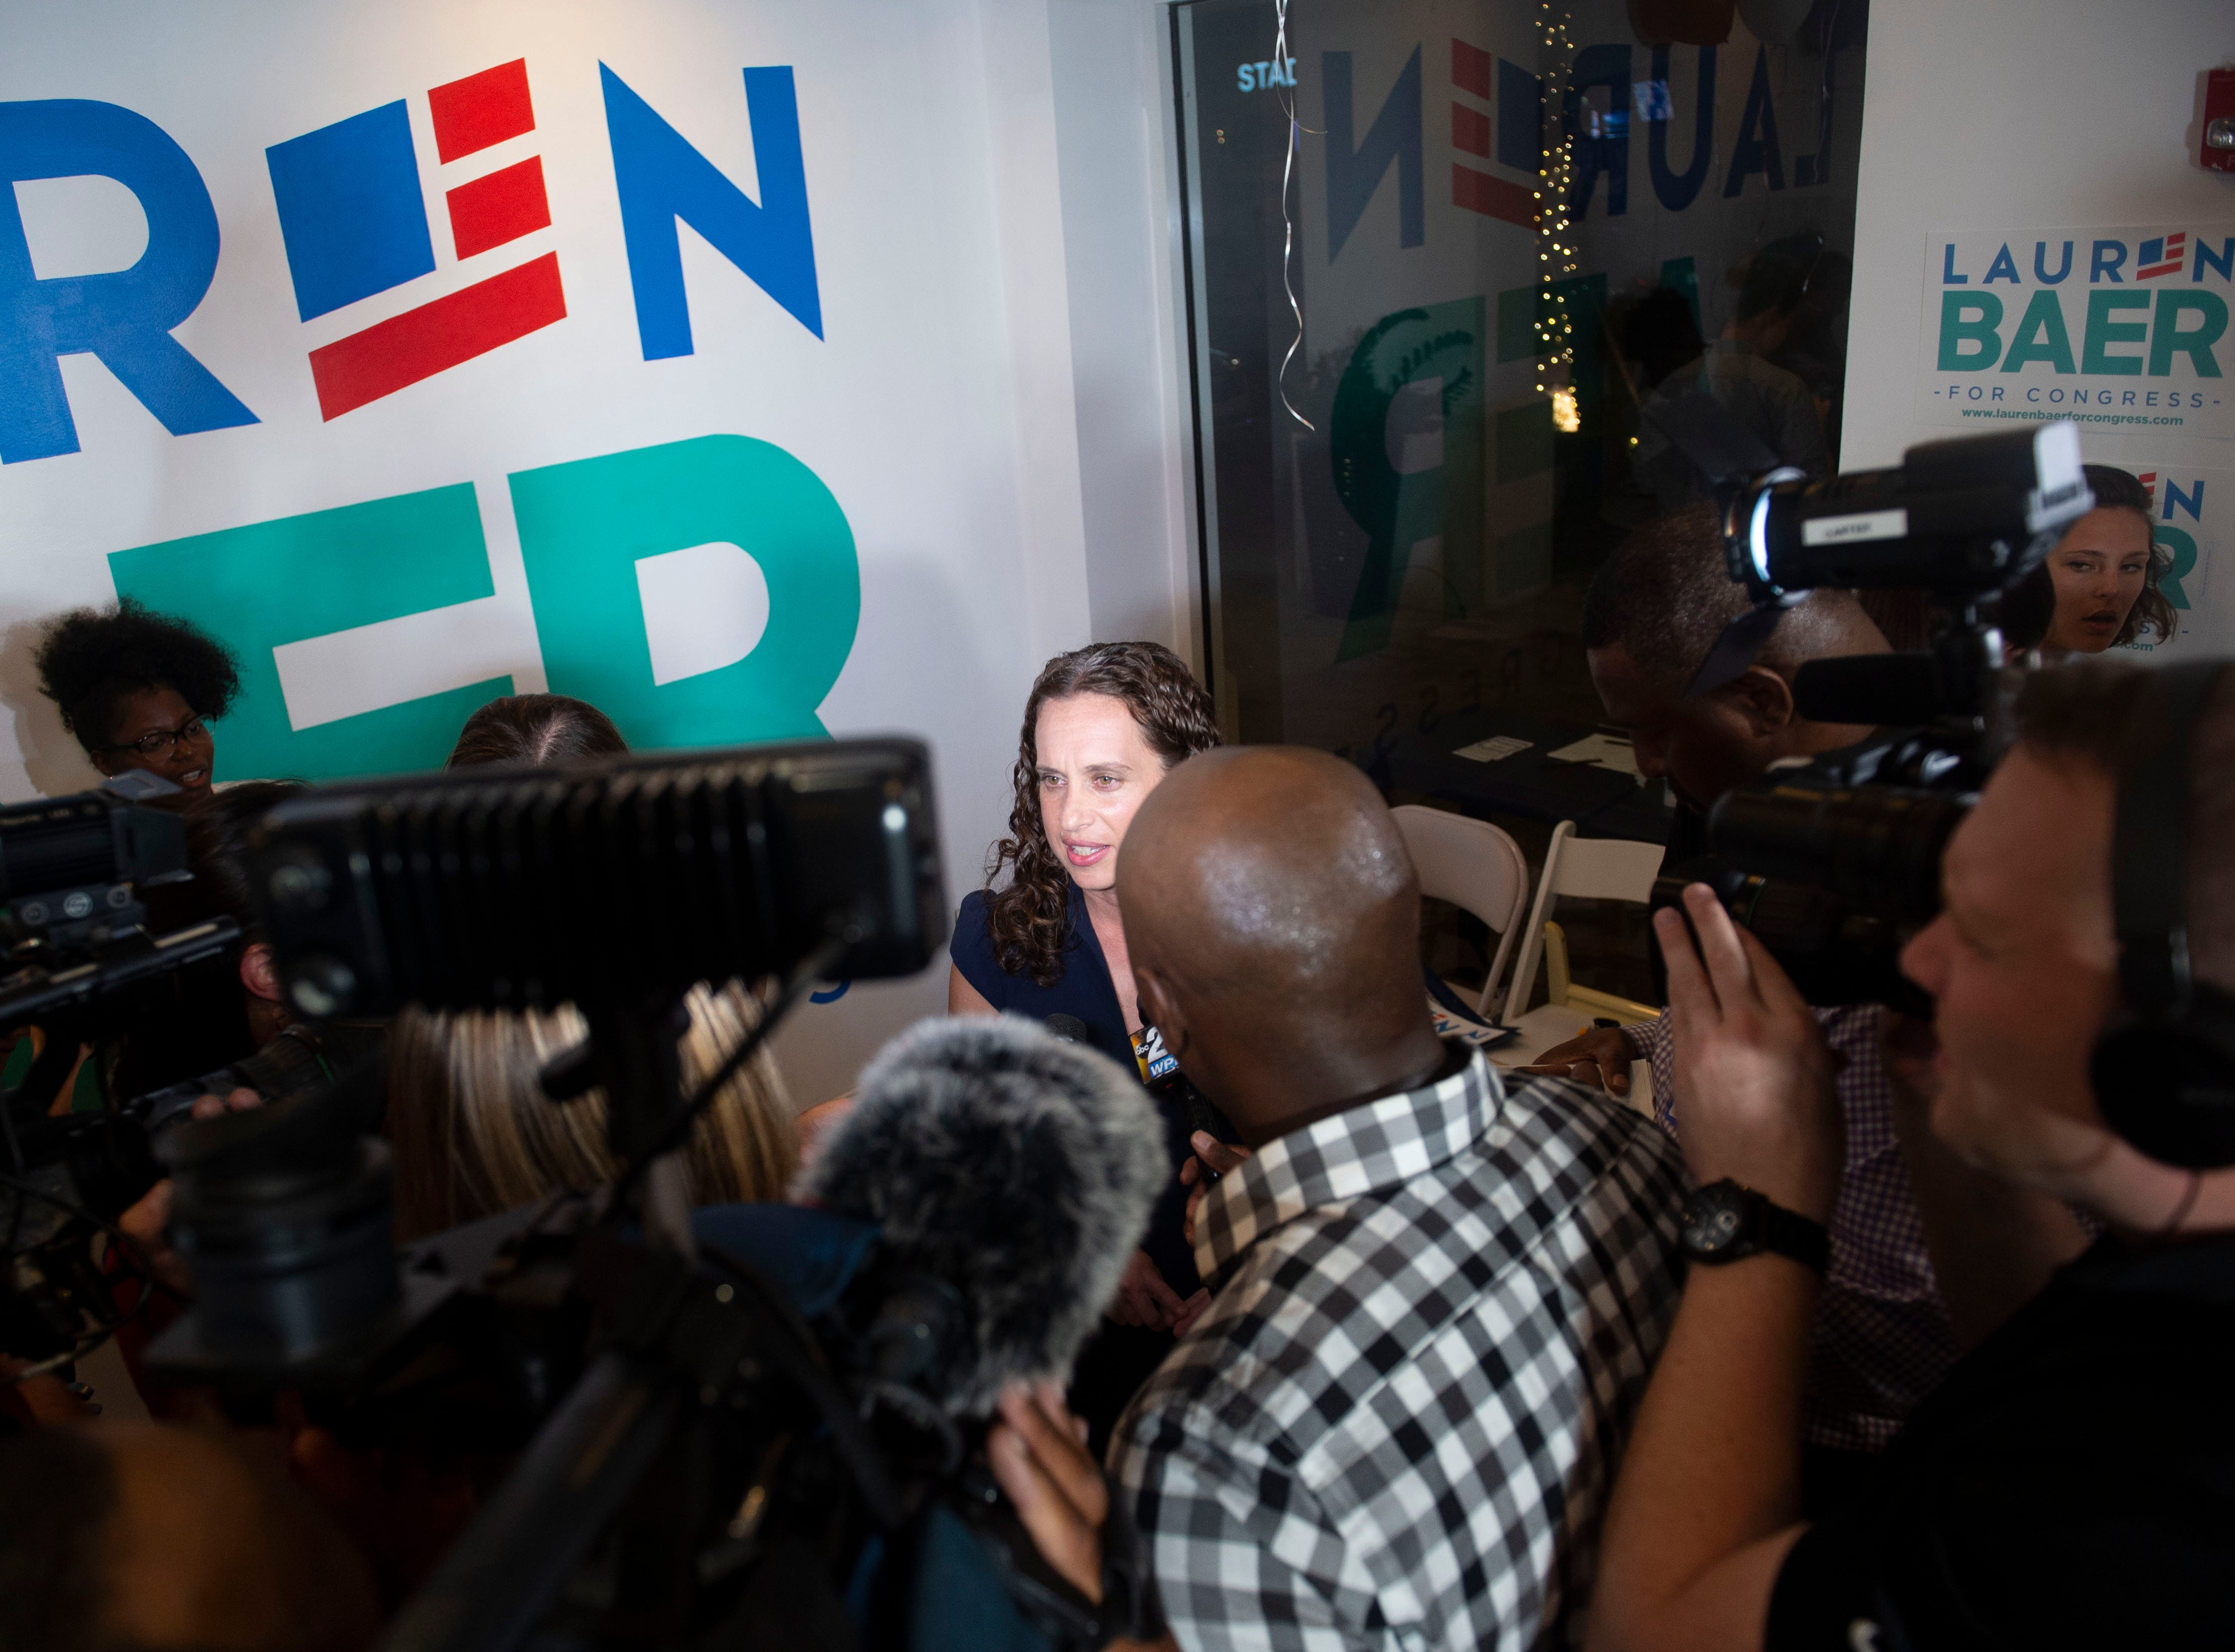 Democrat Lauren Baer, of Palm Beach Gardens, celebrates her victory in the U.S. House District 18 race against Pam Keith on Tuesday, Aug. 28, 2018 during her primary election night party at her campaign office in Jupiter. Baer, a former Obama administration foreign policy advisor, will be facing incumbent U.S. Rep. Brian Mast in the Nov. 6 general election.